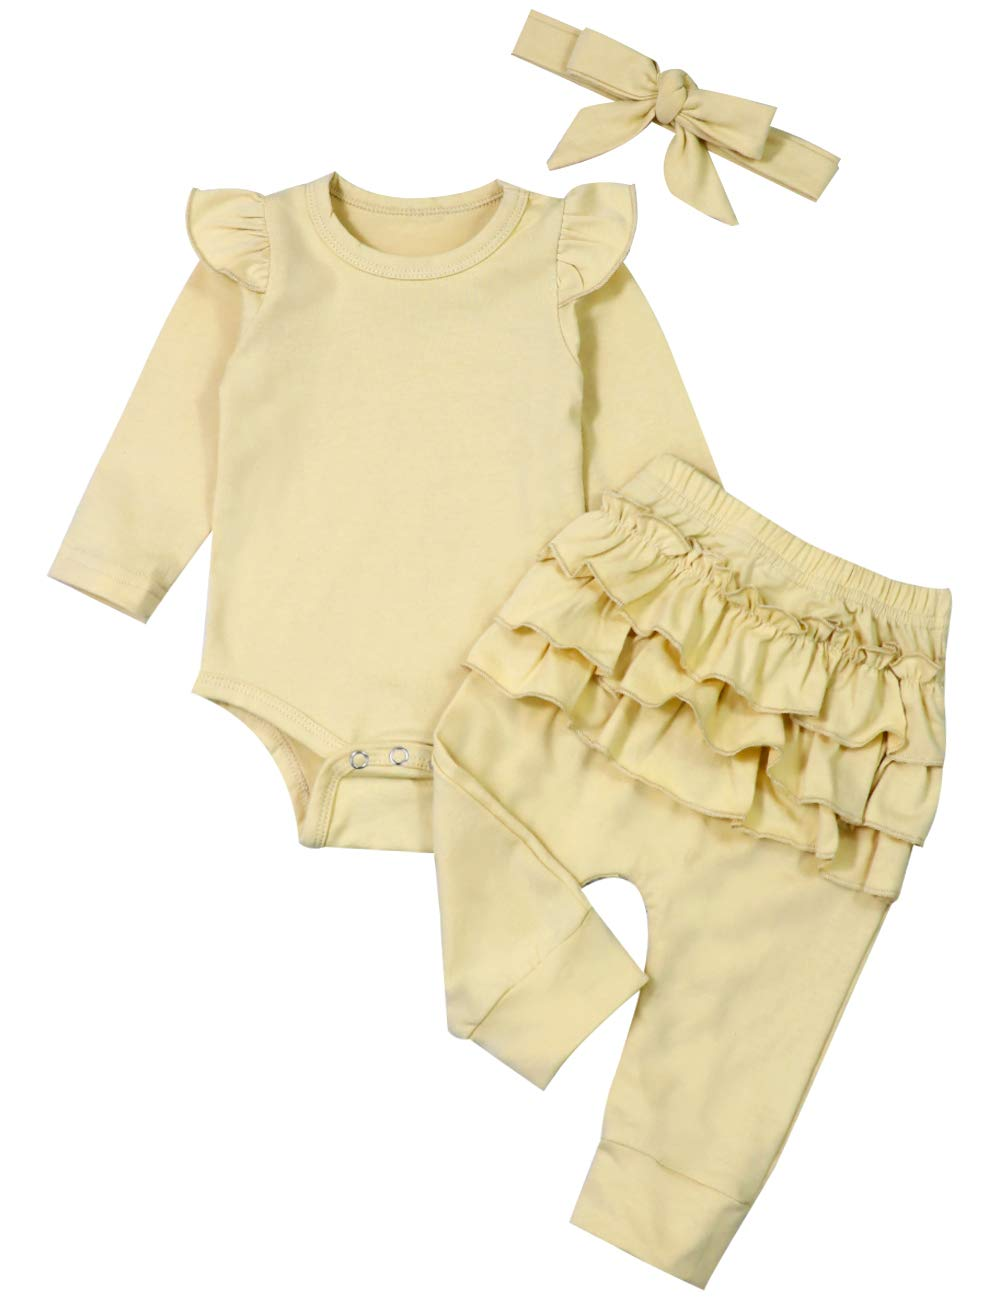 Newborn Baby Girl Clothes Long Sleeve Ruffle Romper Top Floral Pleated Pants with Headband 3PCS Set